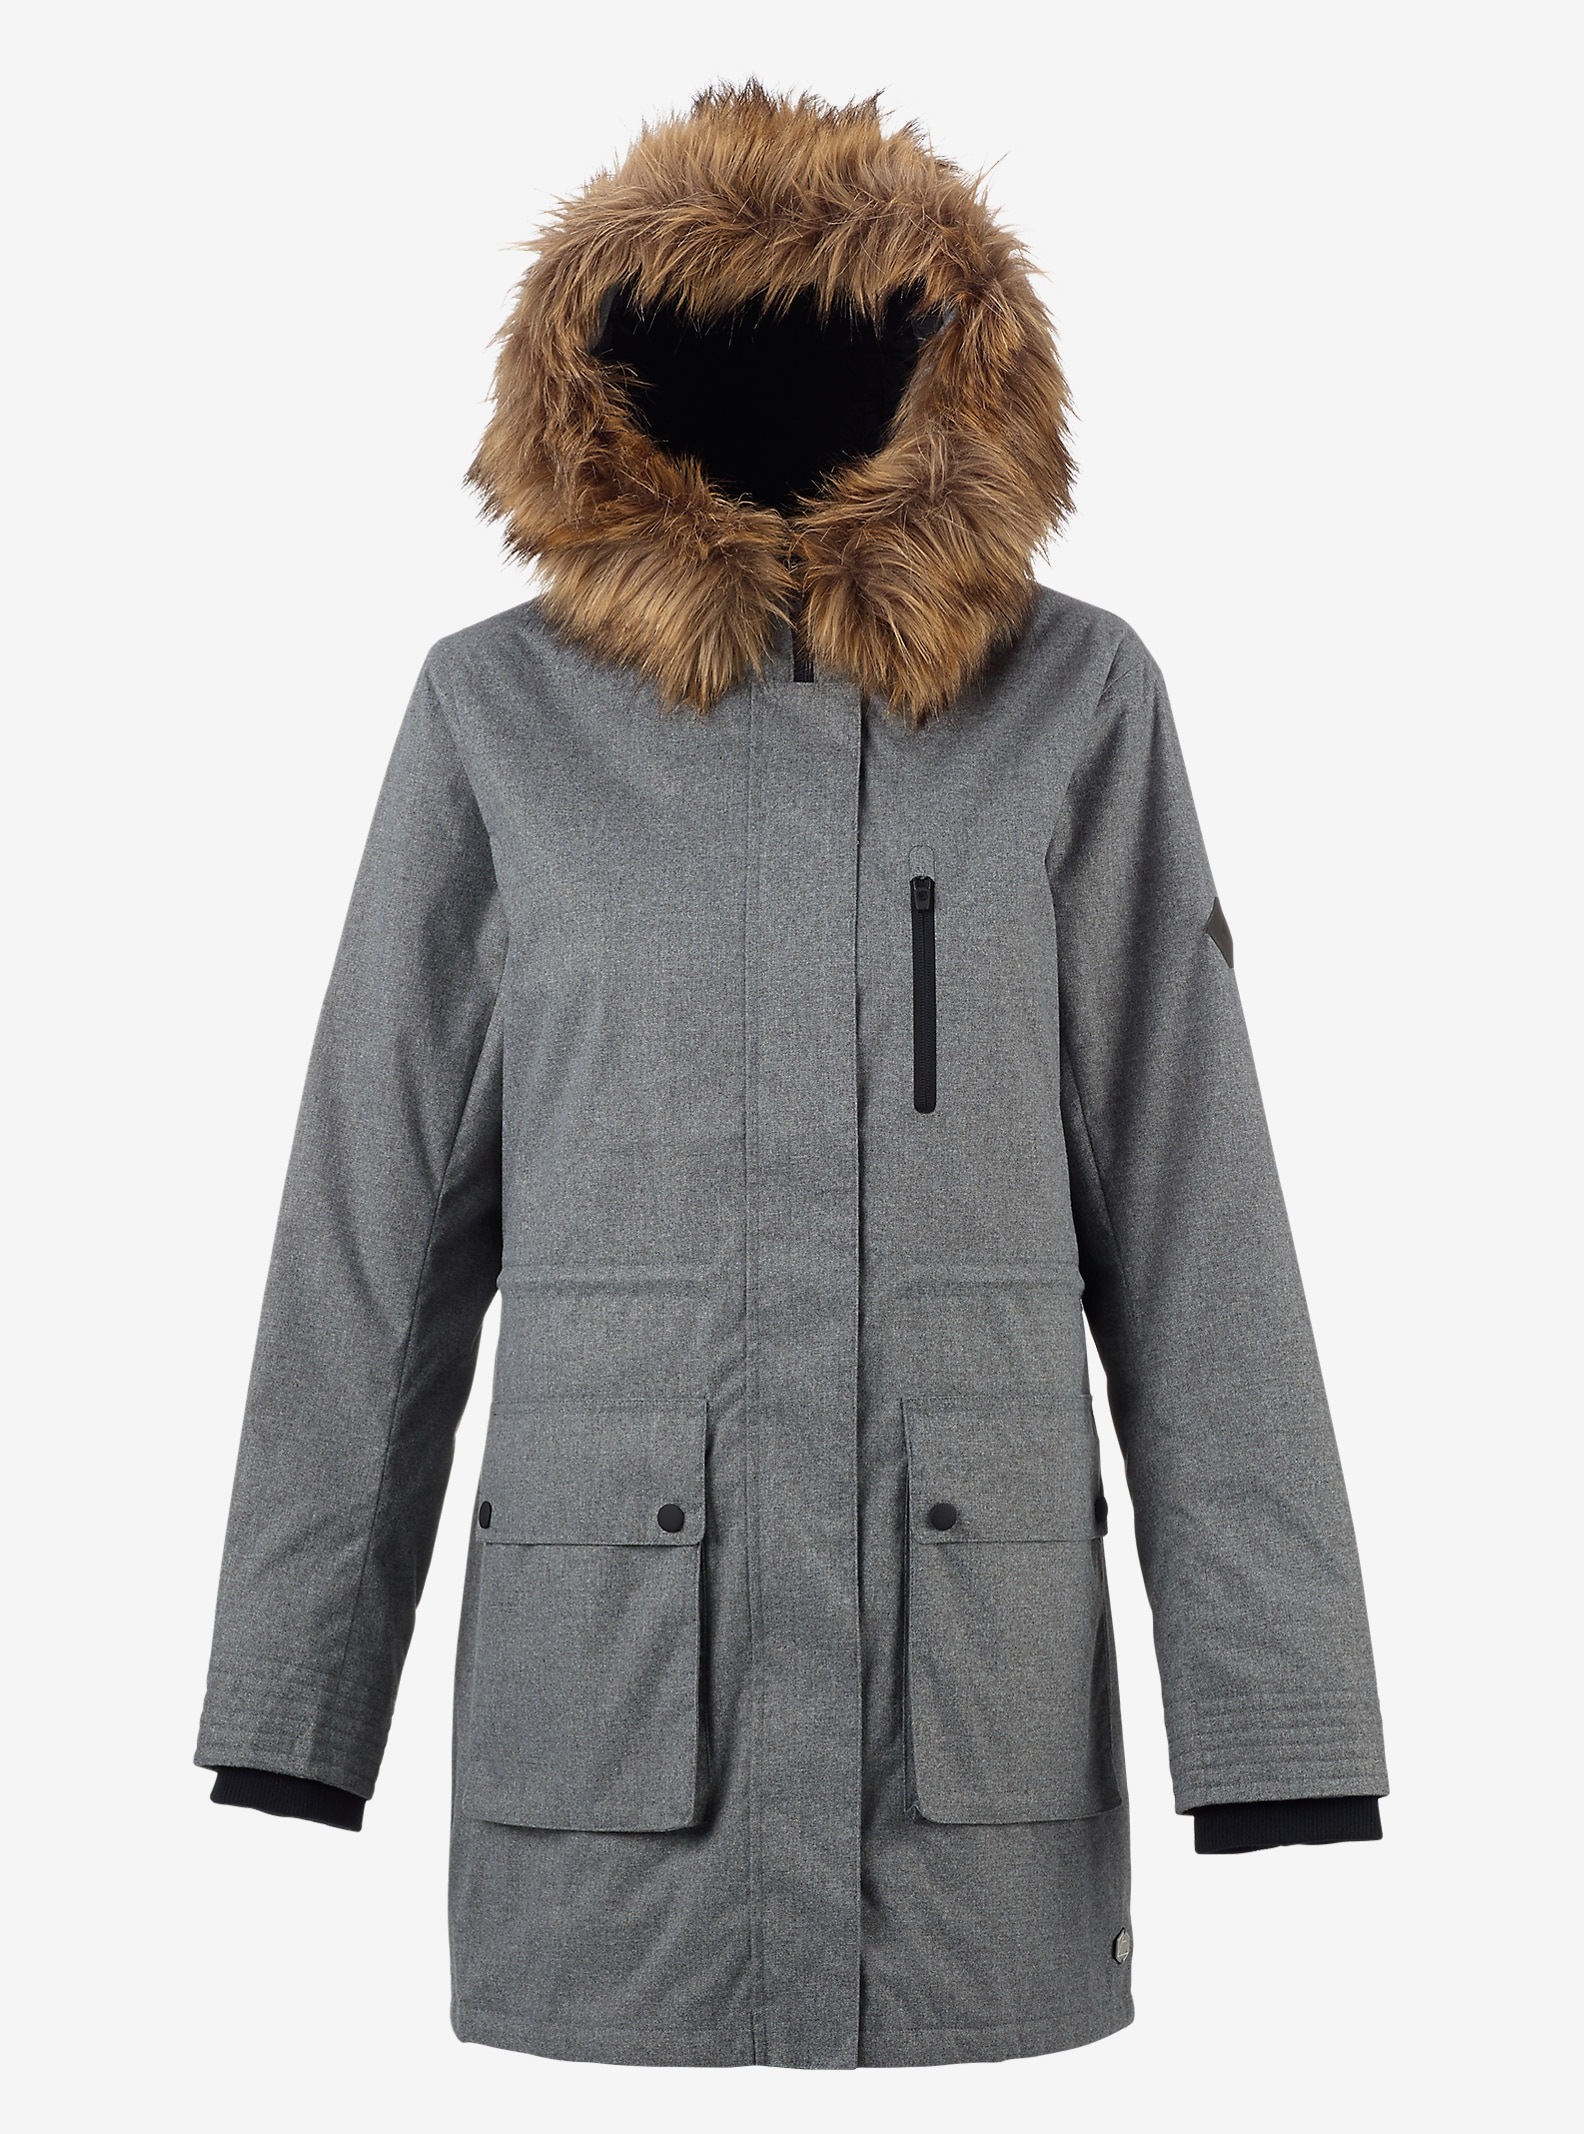 Burton Olympus Jacket shown in Dove Heather